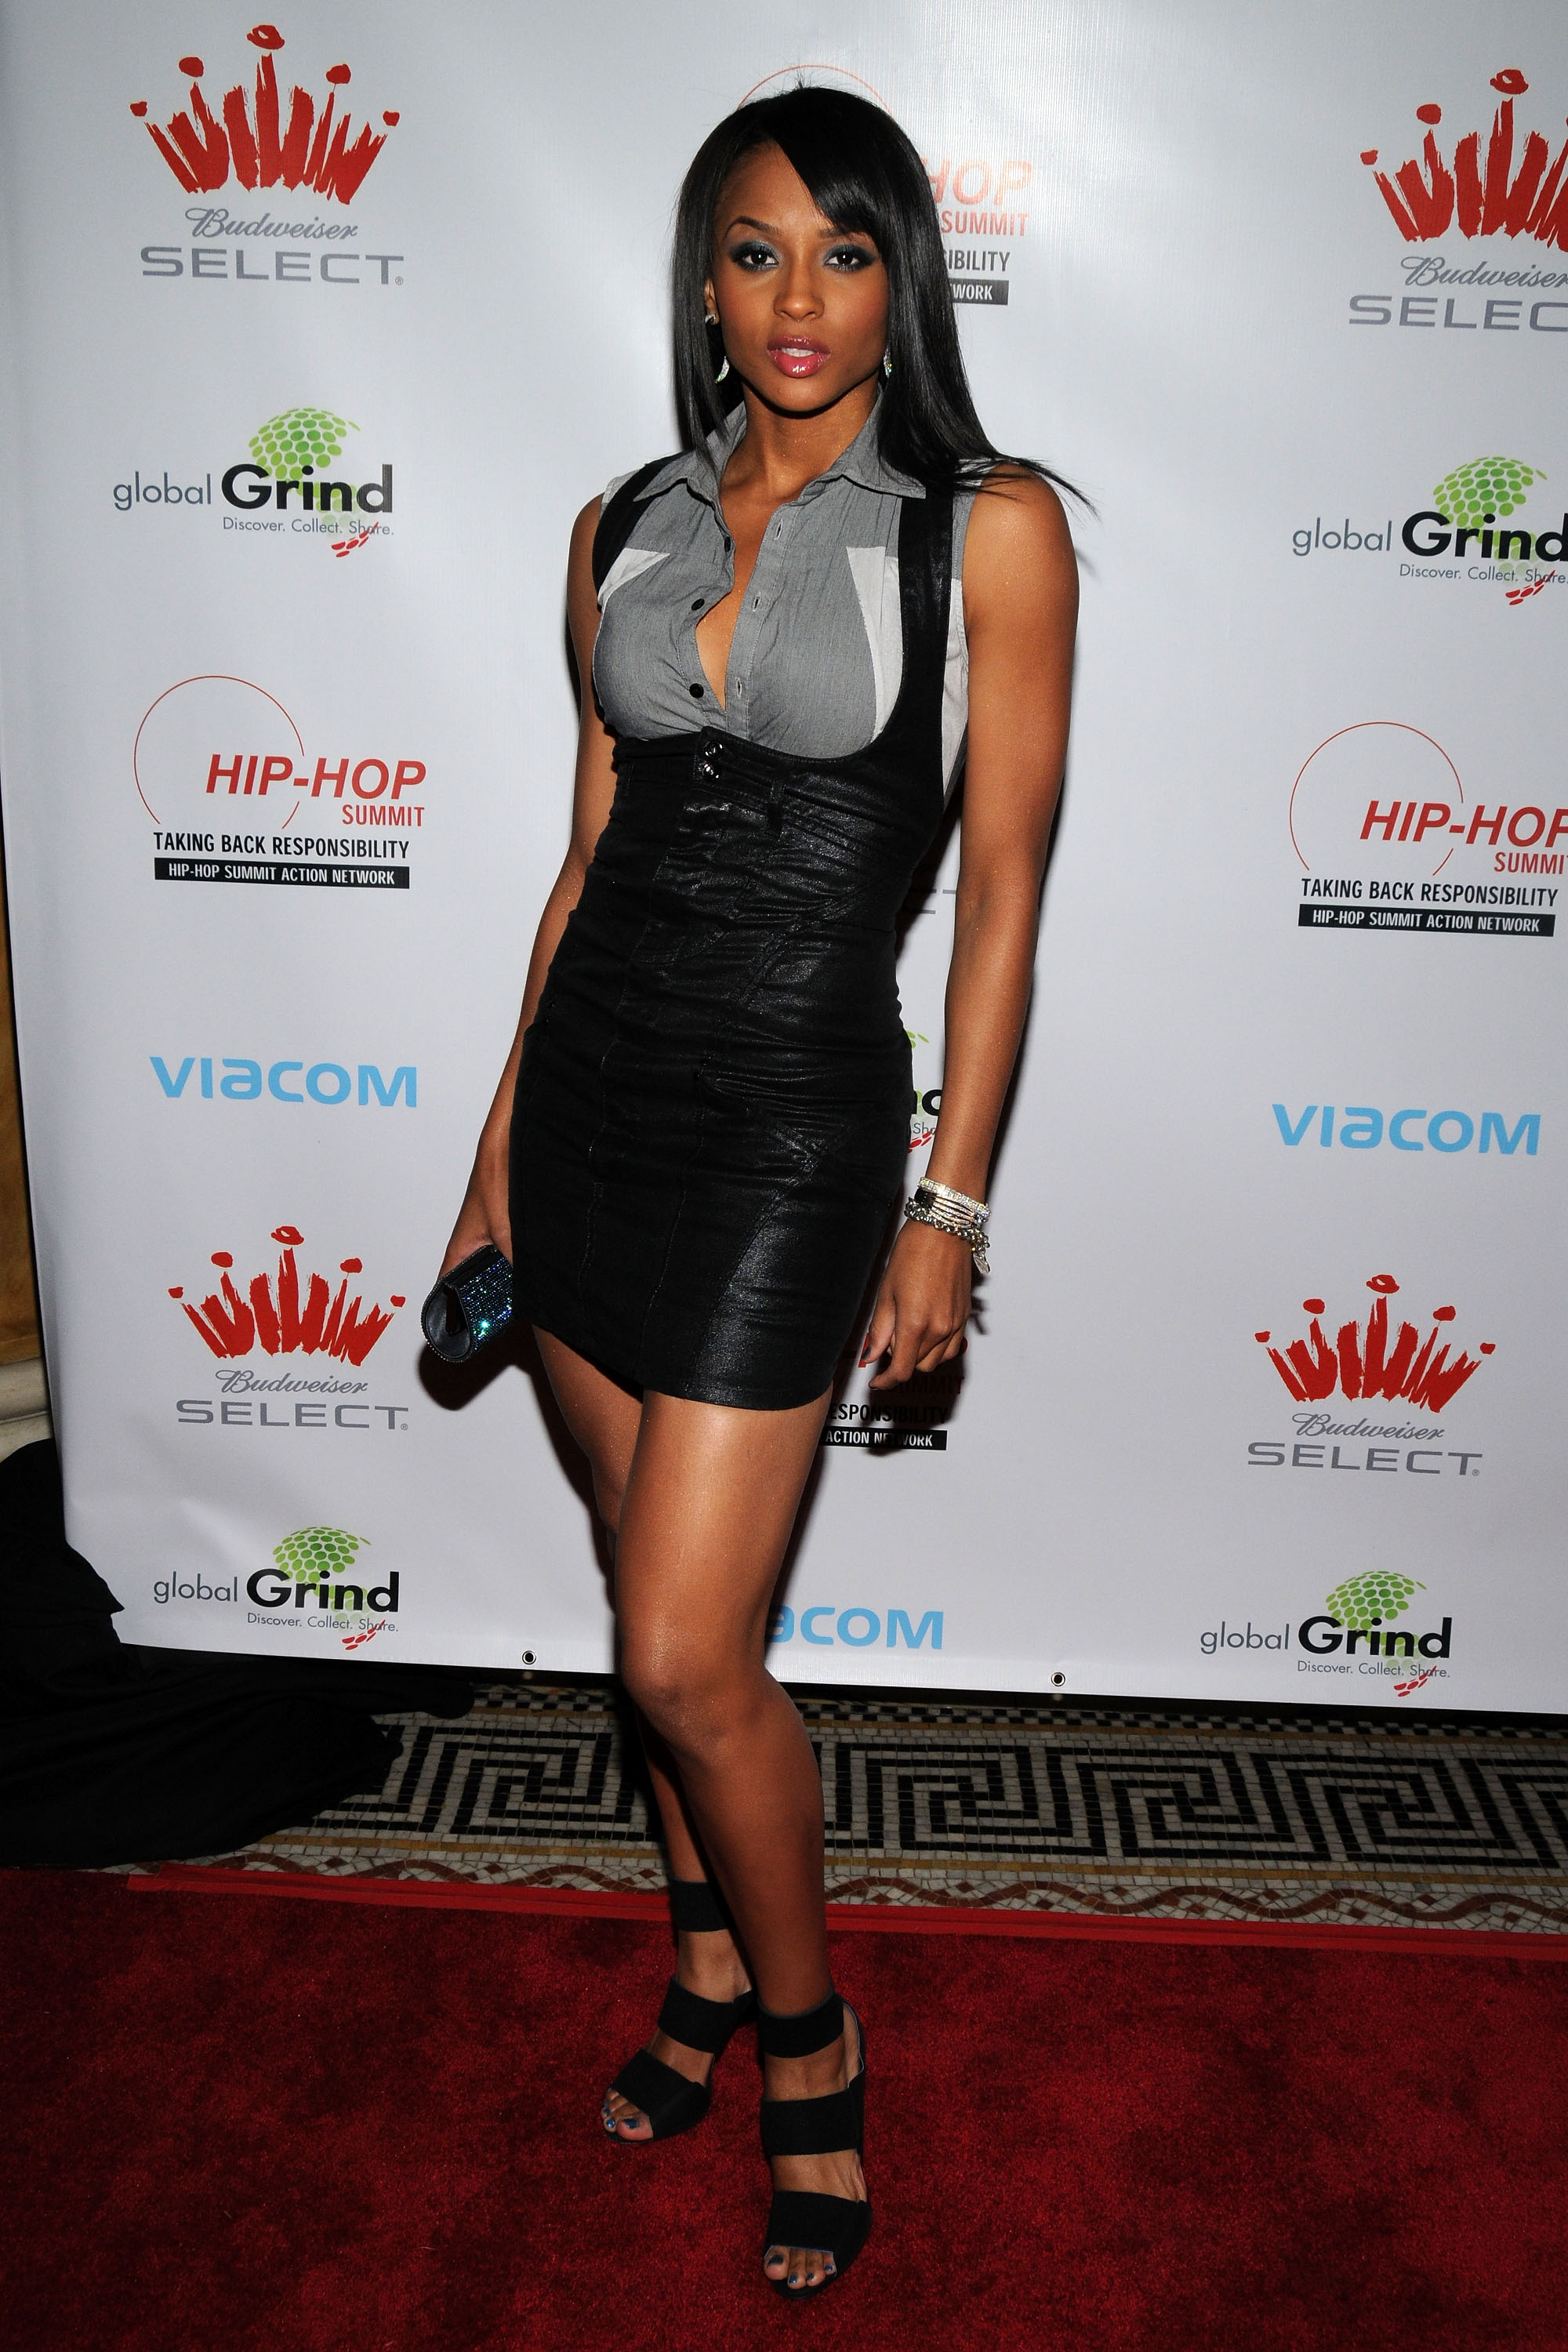 52302_Celebutopia-Ciara-Hip-Hop_Summit_Action_Network13s_Fifth_Annual_Action_Awards-07_122_984lo.jpg